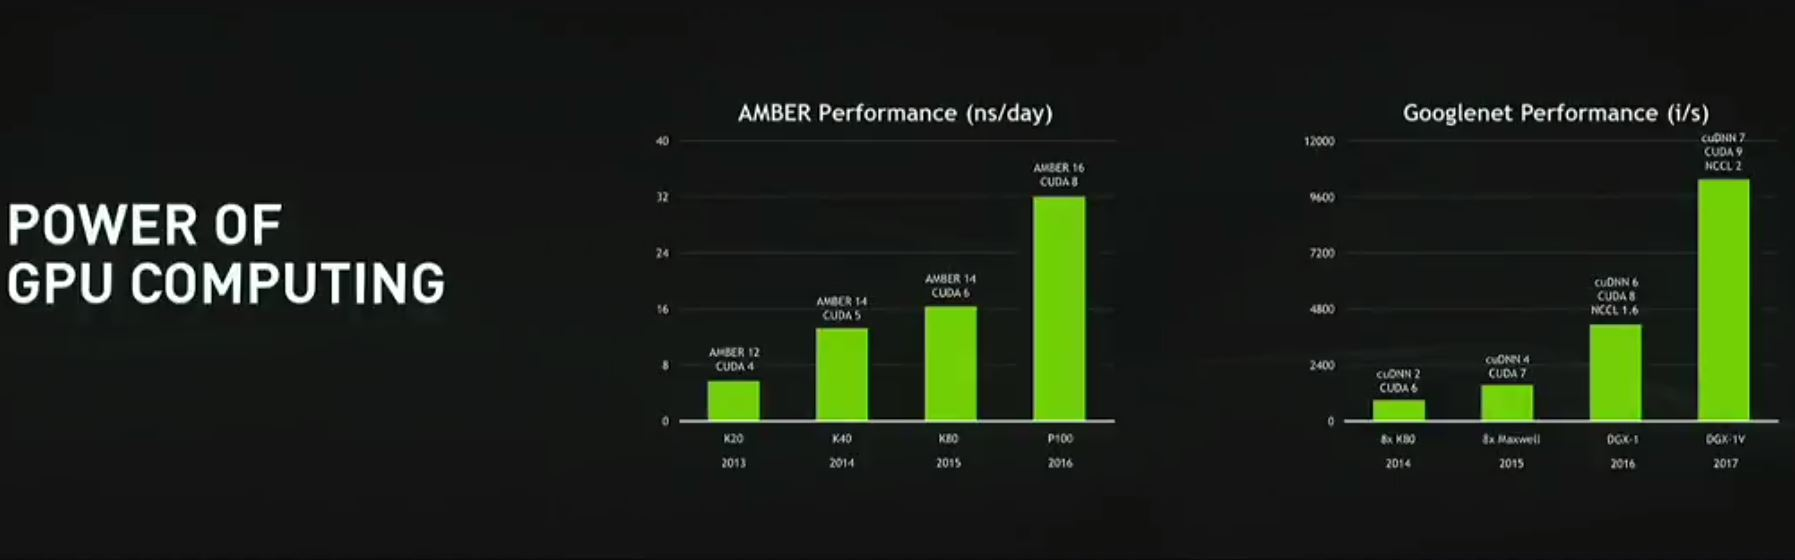 NVIDIA GTC 2017 Amber And Googlenet